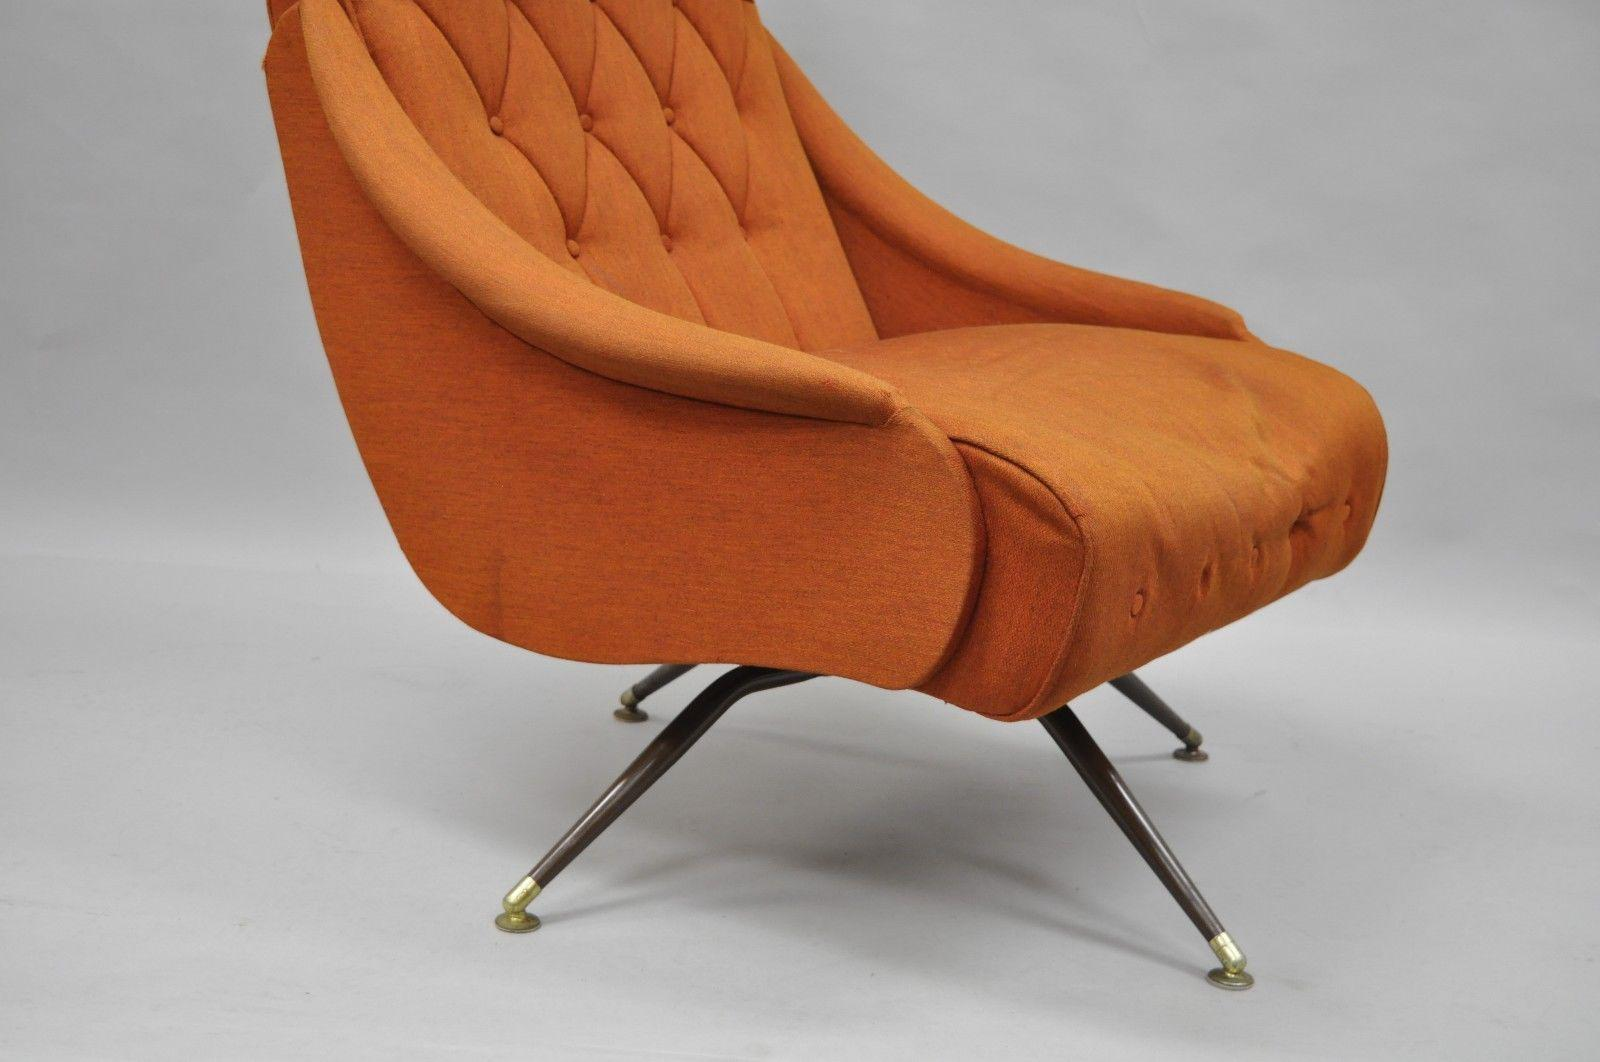 Vintage Mid Century Modern Mak Kraft Of Michigan Orange Fabric Swivel  Lounge Chair   Image 5